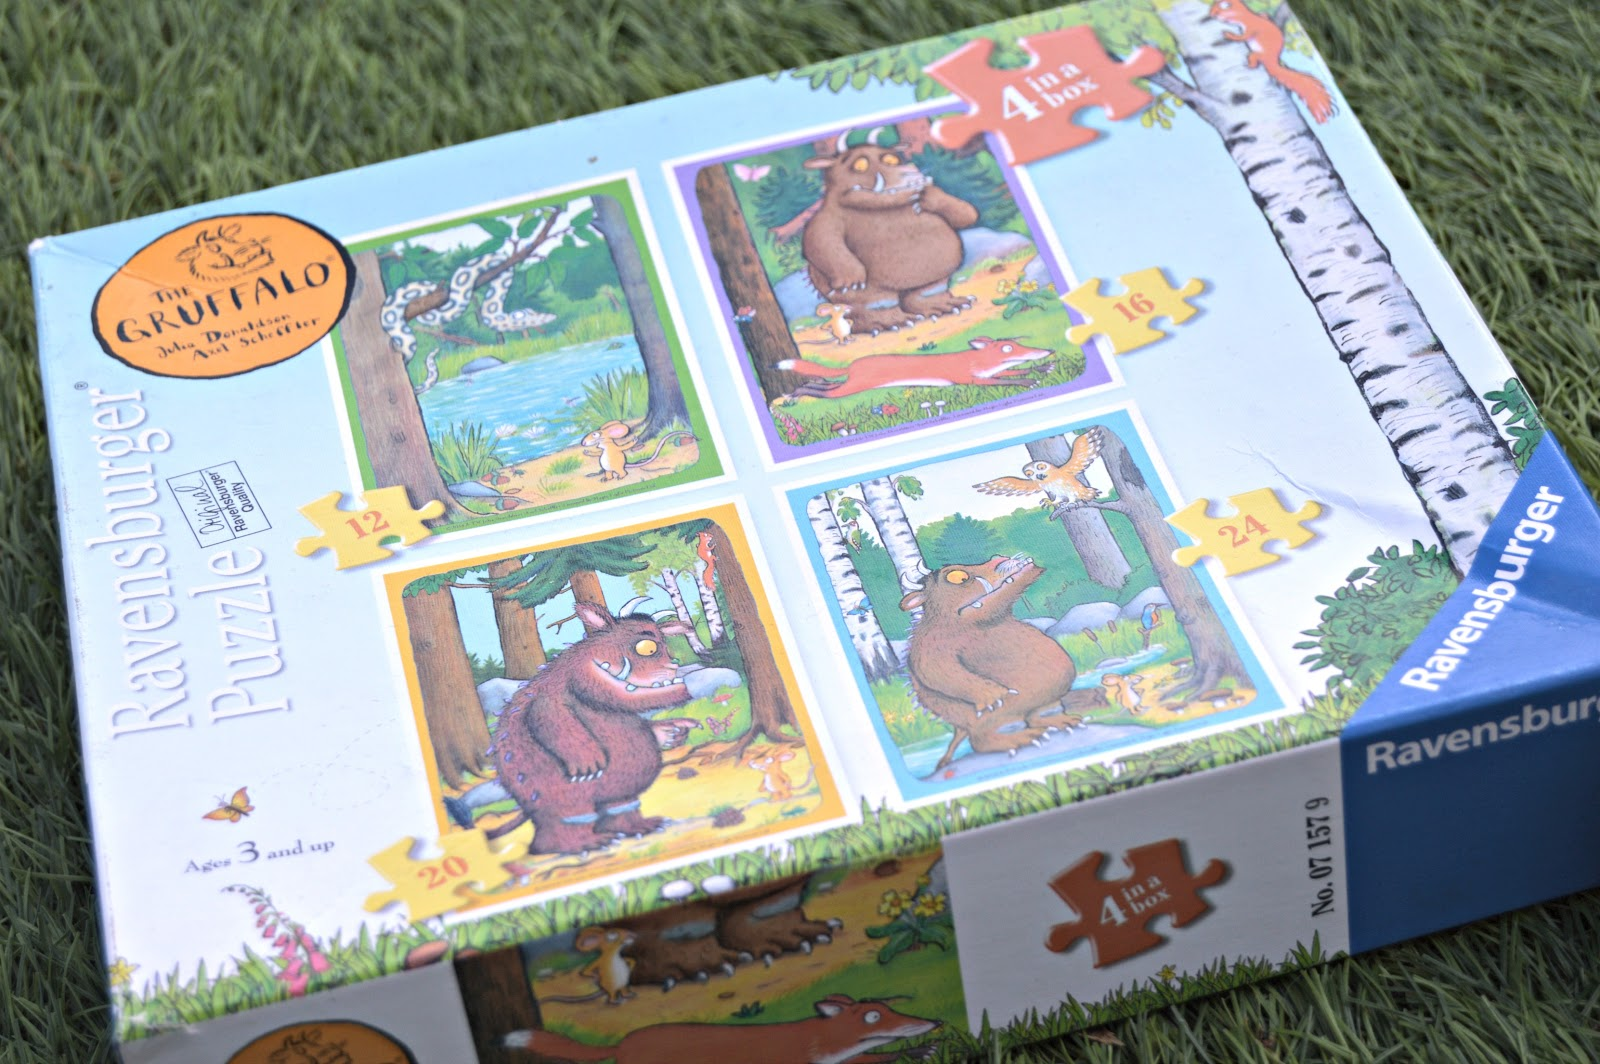 Gruffalo resources for home schooling